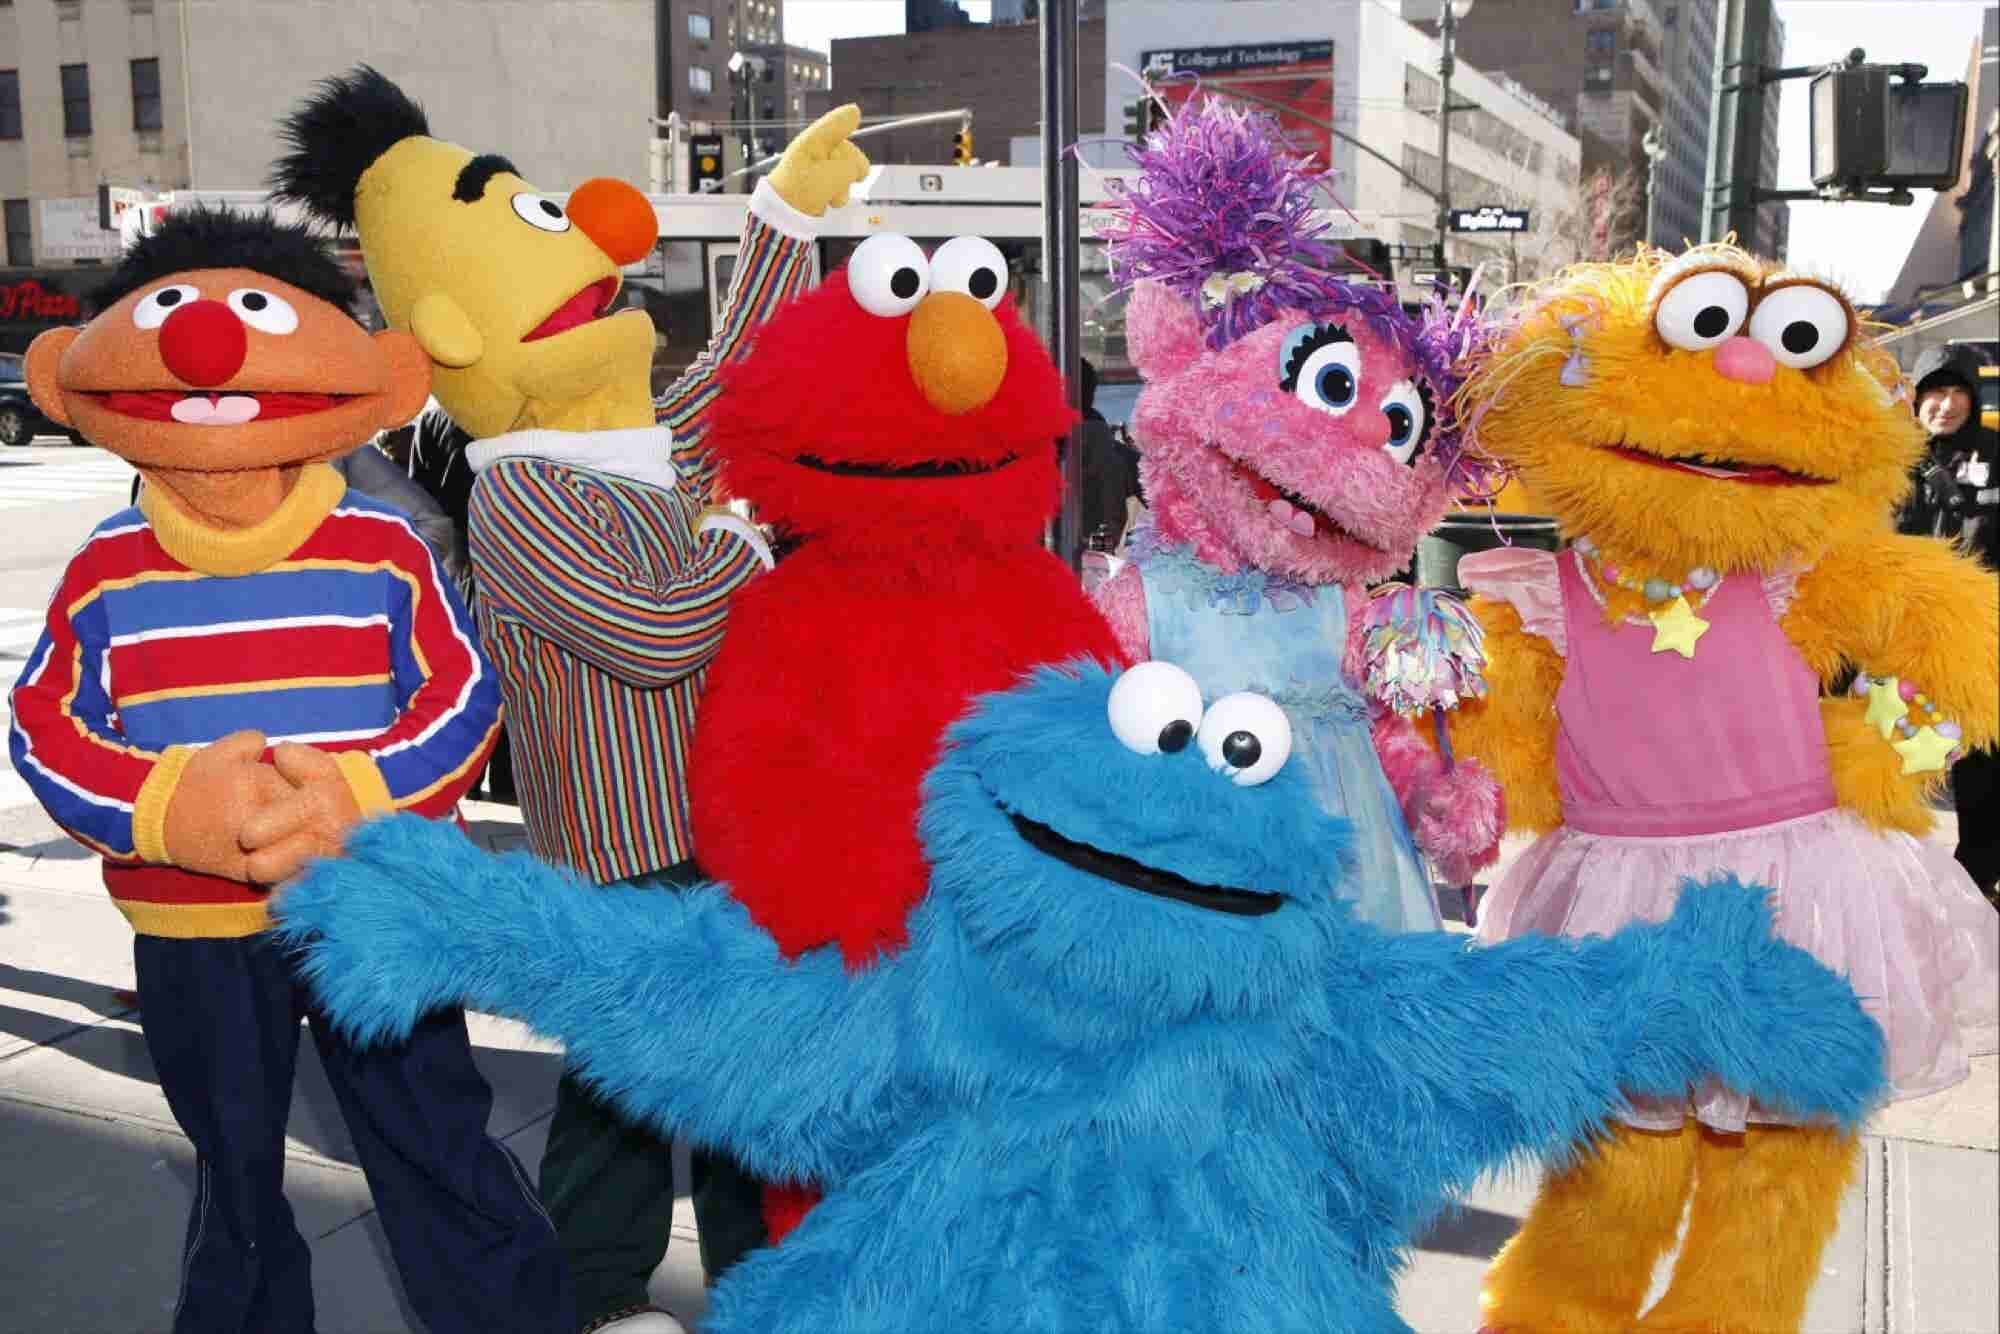 STD-Testing Company Removes Sesame Street Advertisements Following Law...